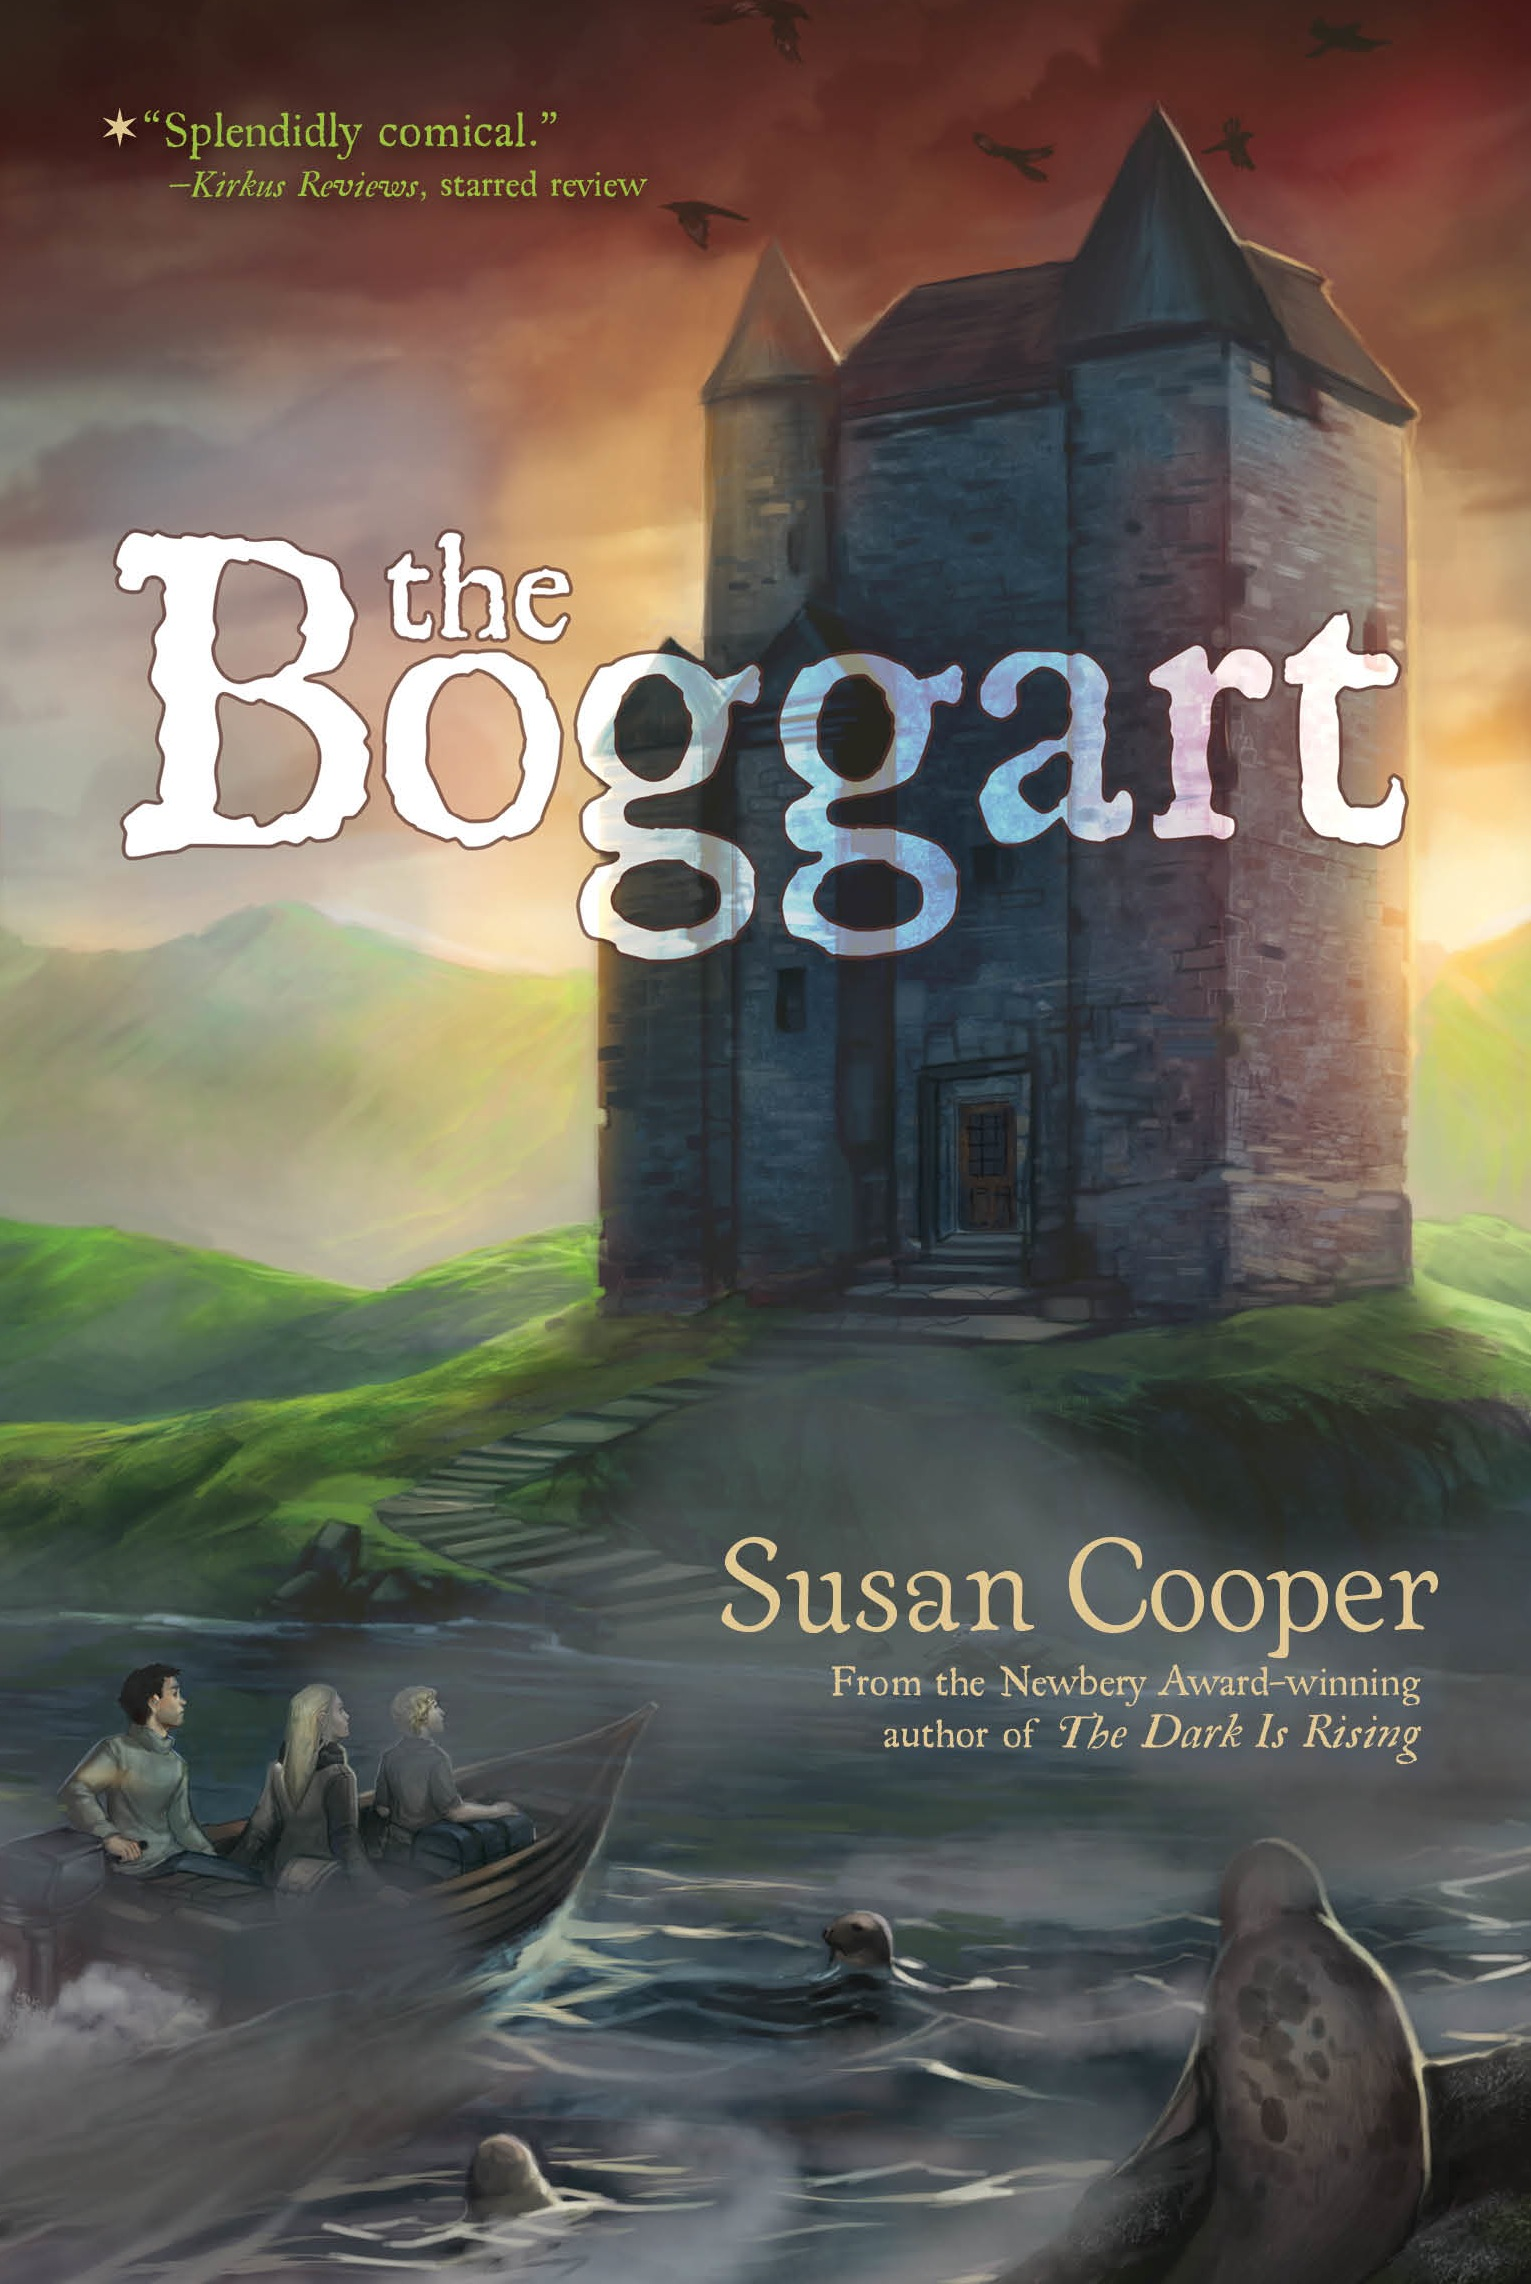 a literary analysis of the boggart by susan cooper The boggart and the monster ebook: susan cooper: amazonca: kindle store amazonca try prime kindle store go search en hello sign in your.